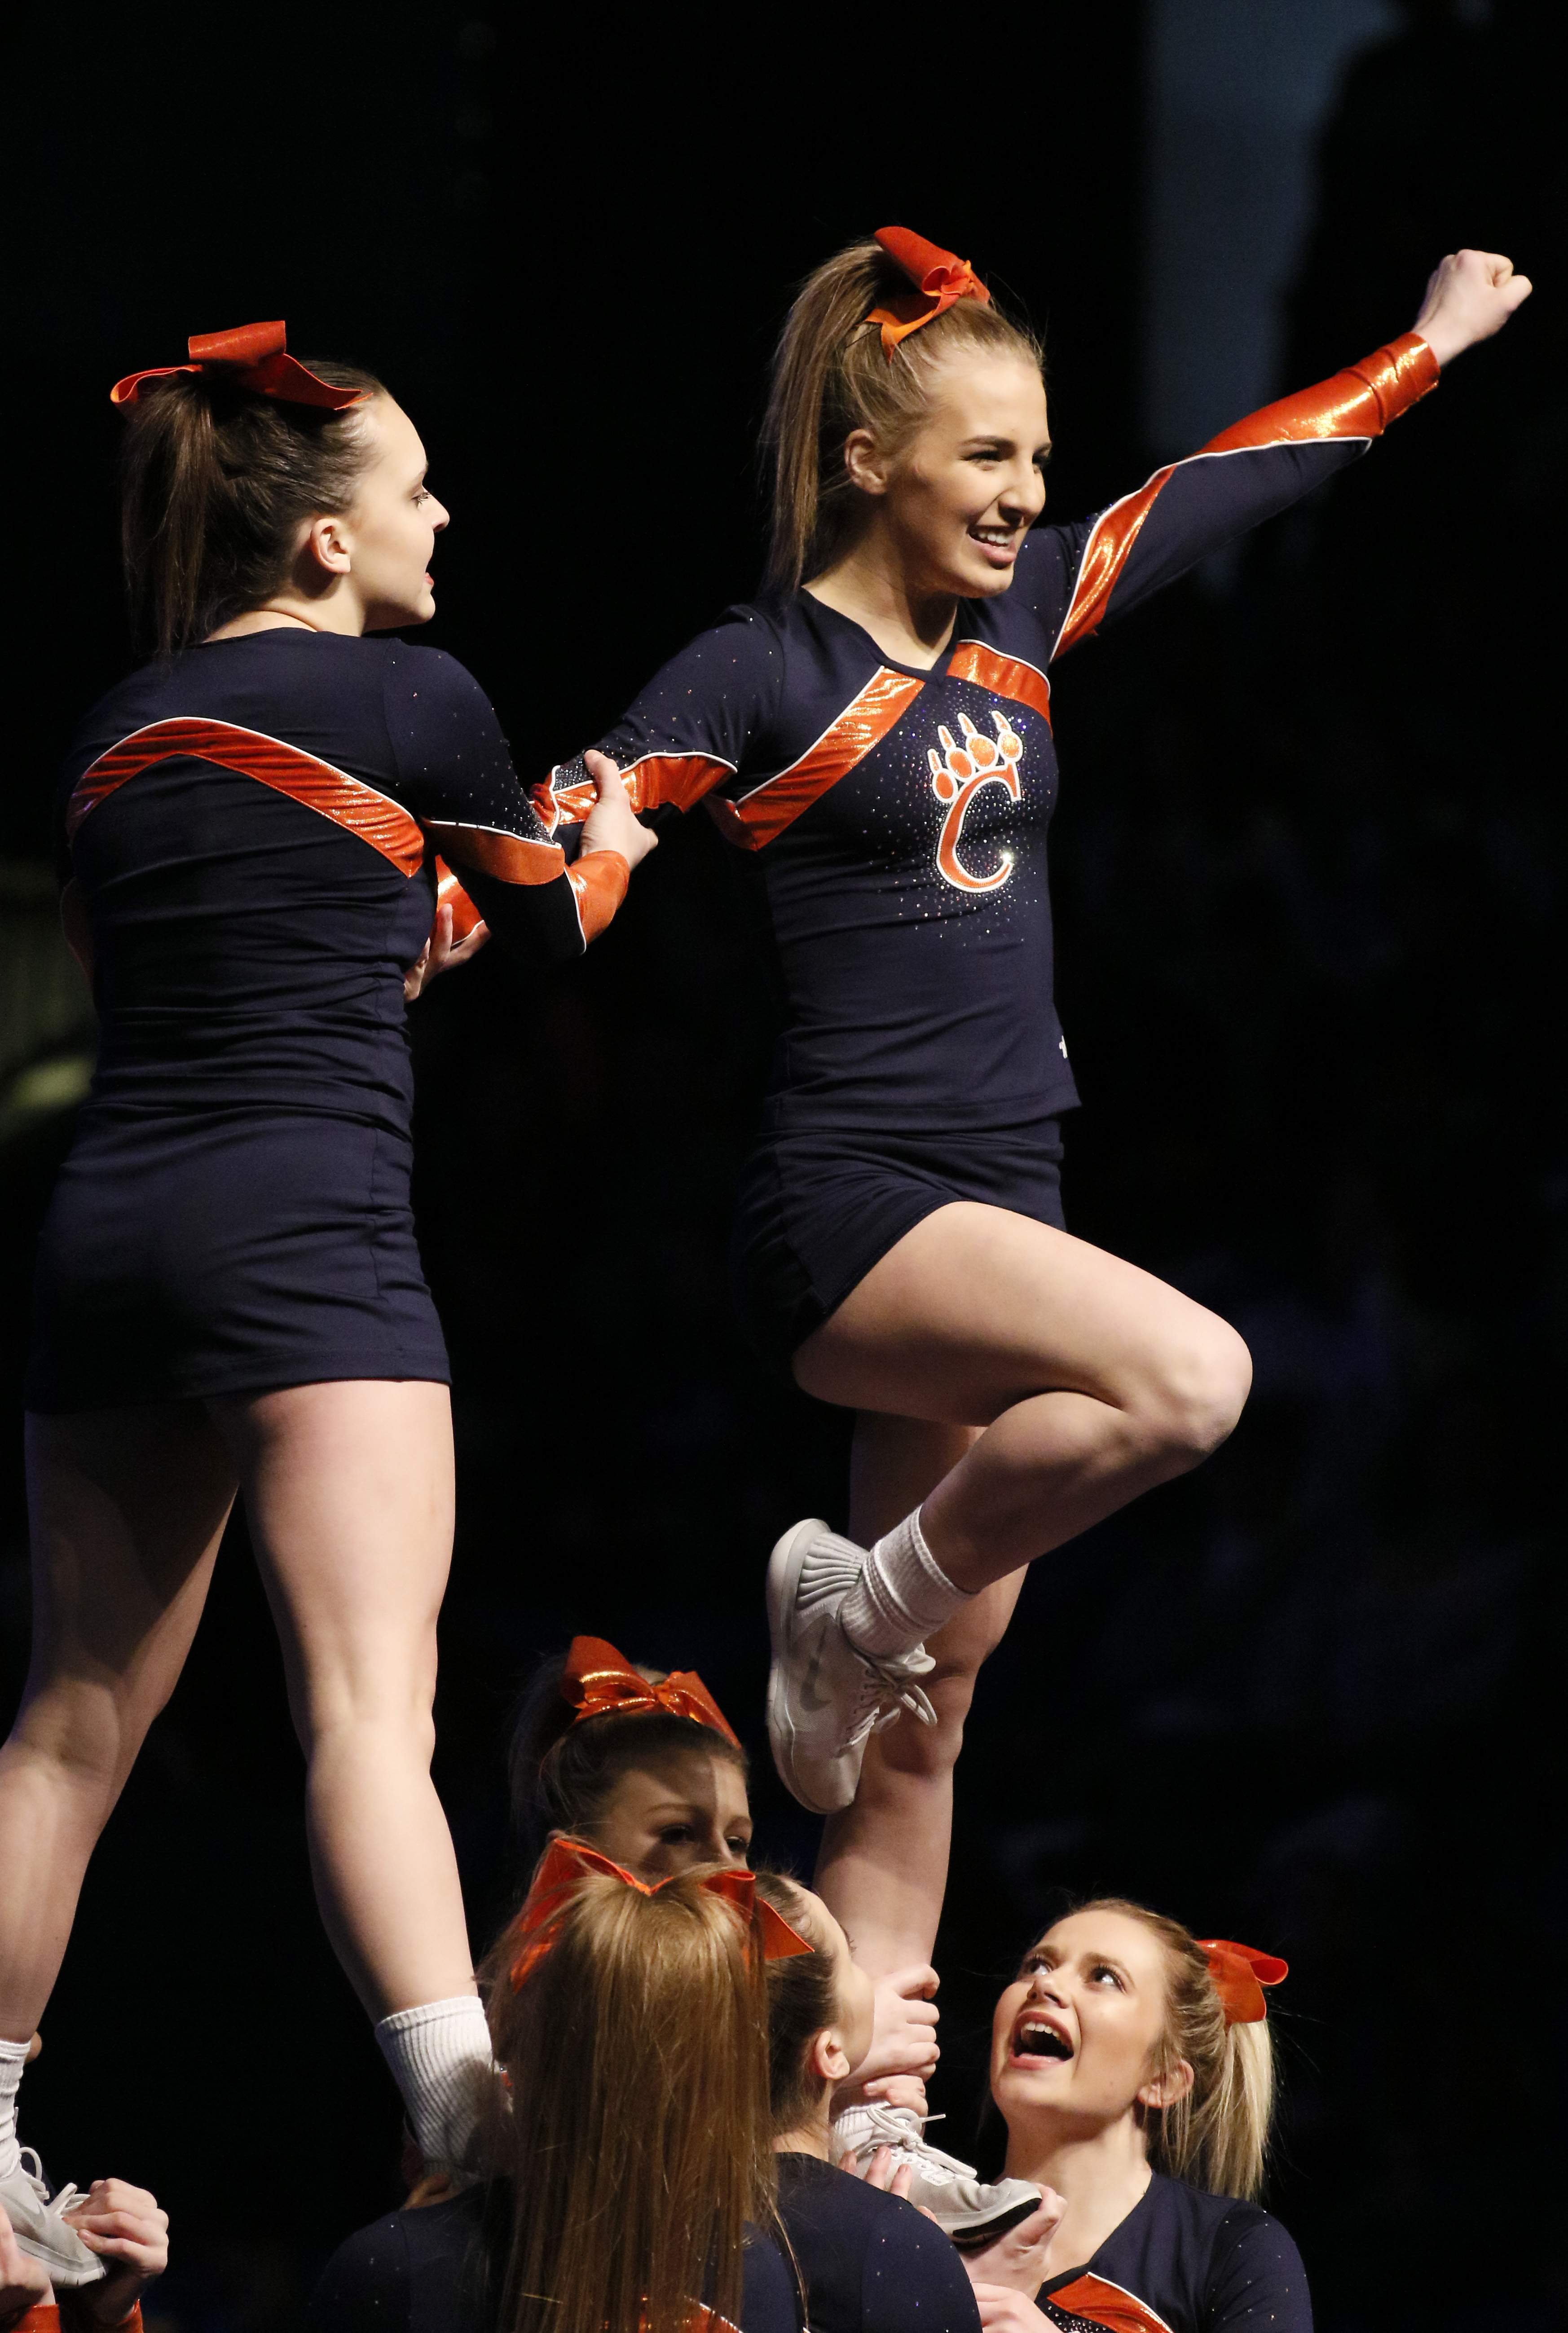 Carterville High School competes in the preliminary round of the IHSA Cheerleading finals in Bloomington on Feb. 2.